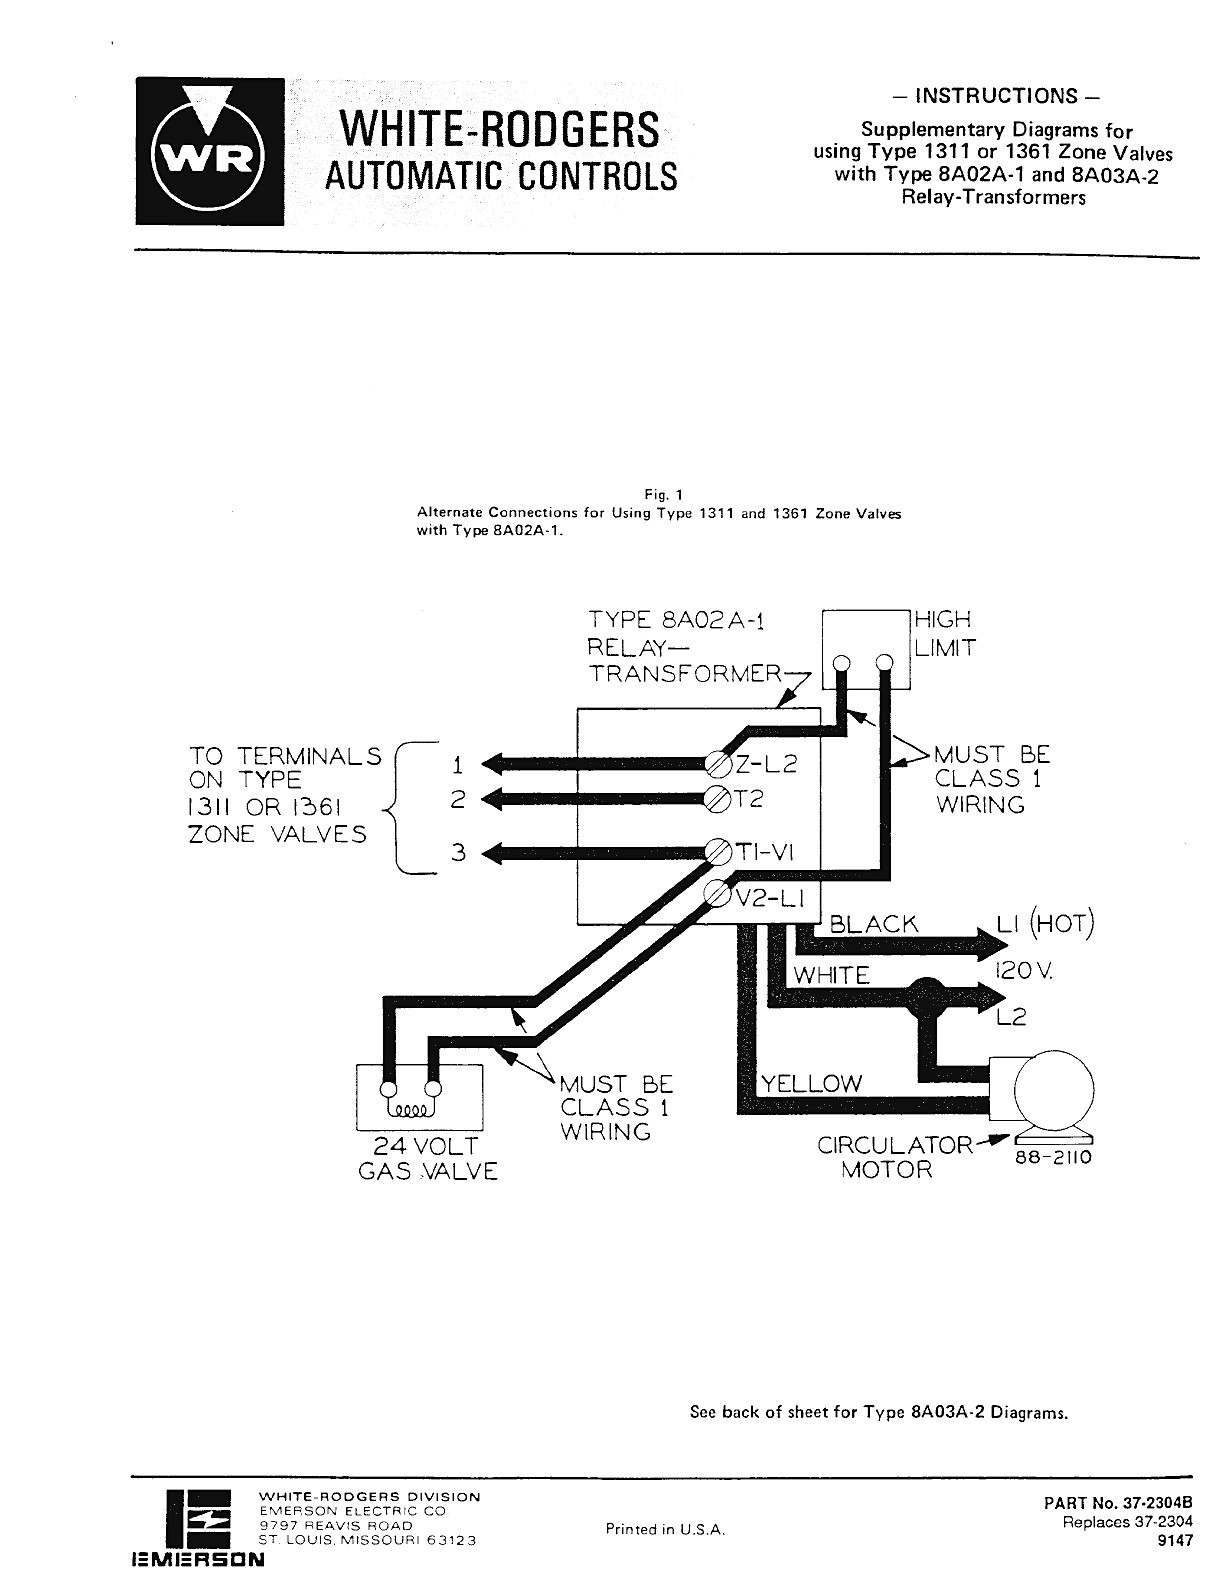 36e54 214 Gas Valve Wiring Diagram | Wiring Diagram on white rodgers zone valve 1311, gas furnace electrical wiring, white rodgers gas valves modulating, white rodgers gas valves parts, white rodgers parts catalog, white rodgers wiring diagrams, heat zone valves wiring, older gas furnace transformer wiring, white rodgers controller wiring, white rodgers relay wiring, white rodgers 1361 zone valve, heil furnace wiring, white rodgers thermostat, gas furnace control wiring, hvac fan relay wiring, 90 370 white rodgers wiring, white rodgers valve model 36c84, white rodgers aquastat wiring, white rodgers gas valves solenoid, white rodgers 3 wire zone valve,